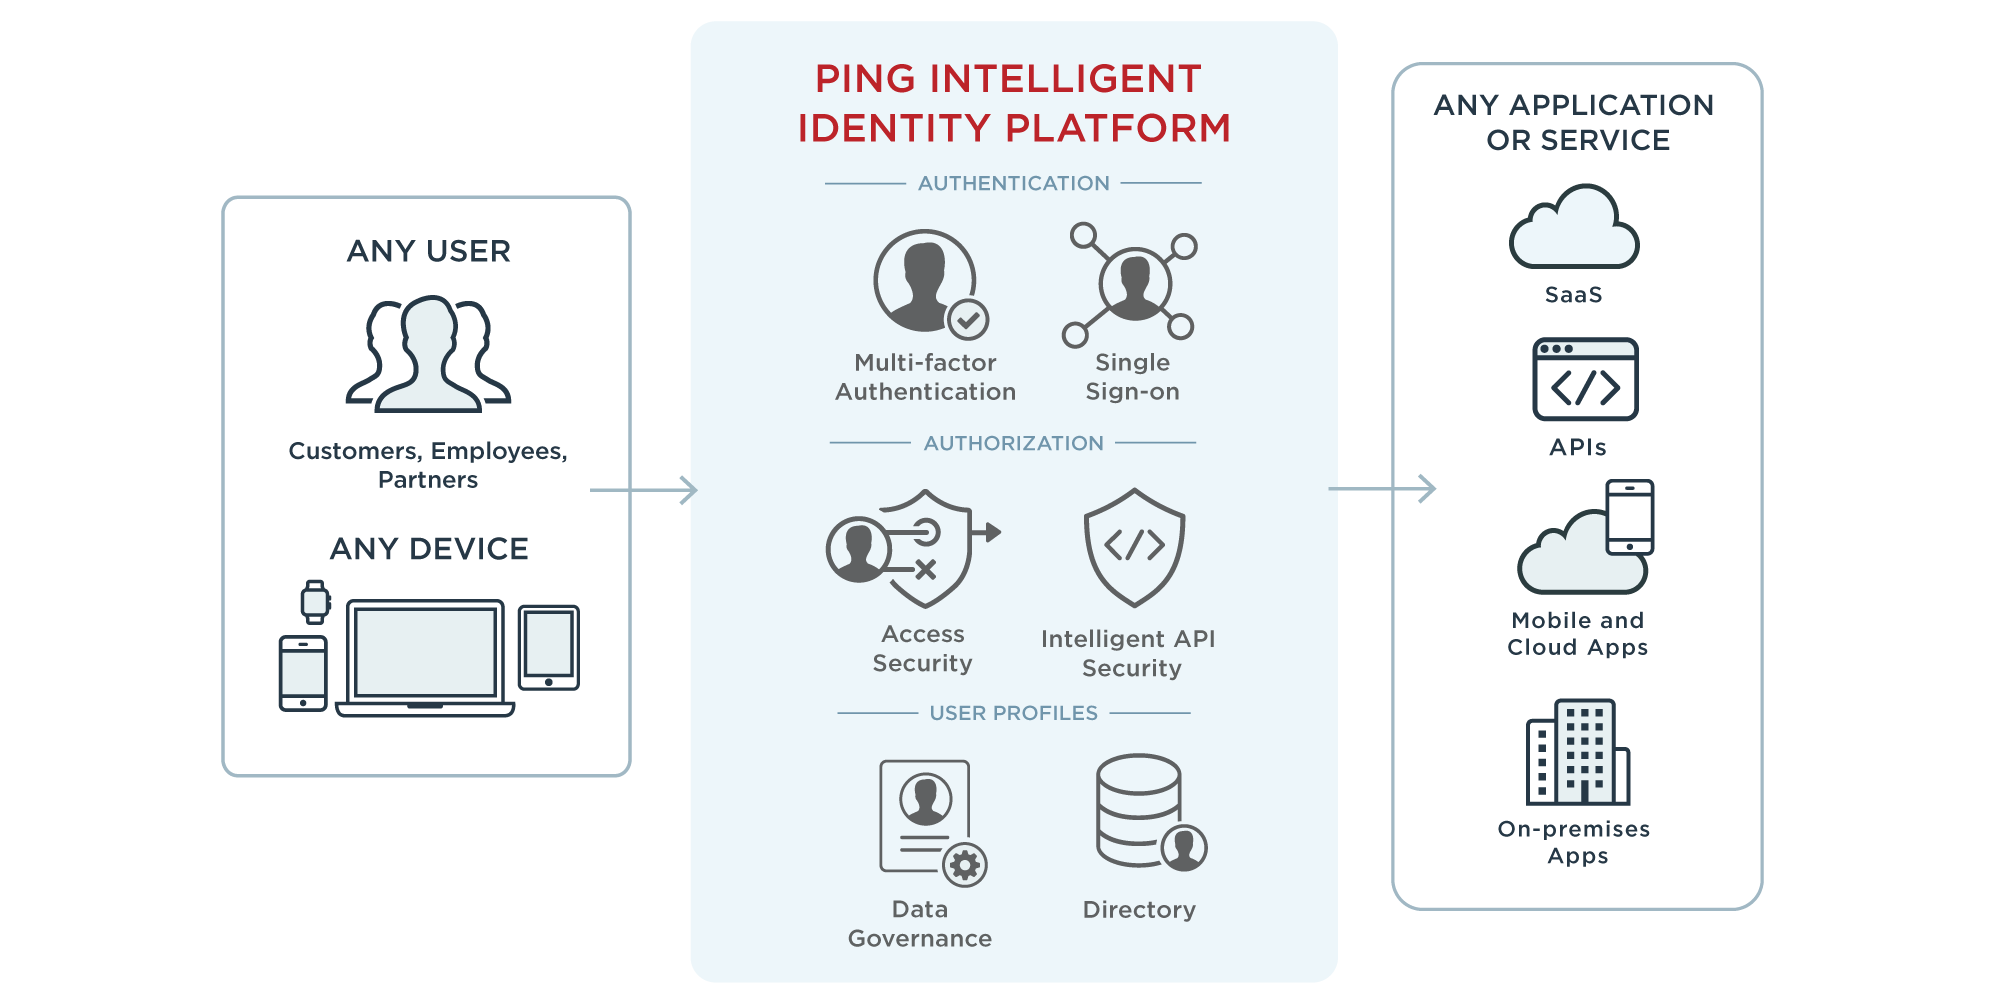 Platform Overview - Identity and Access Management | Ping Identity